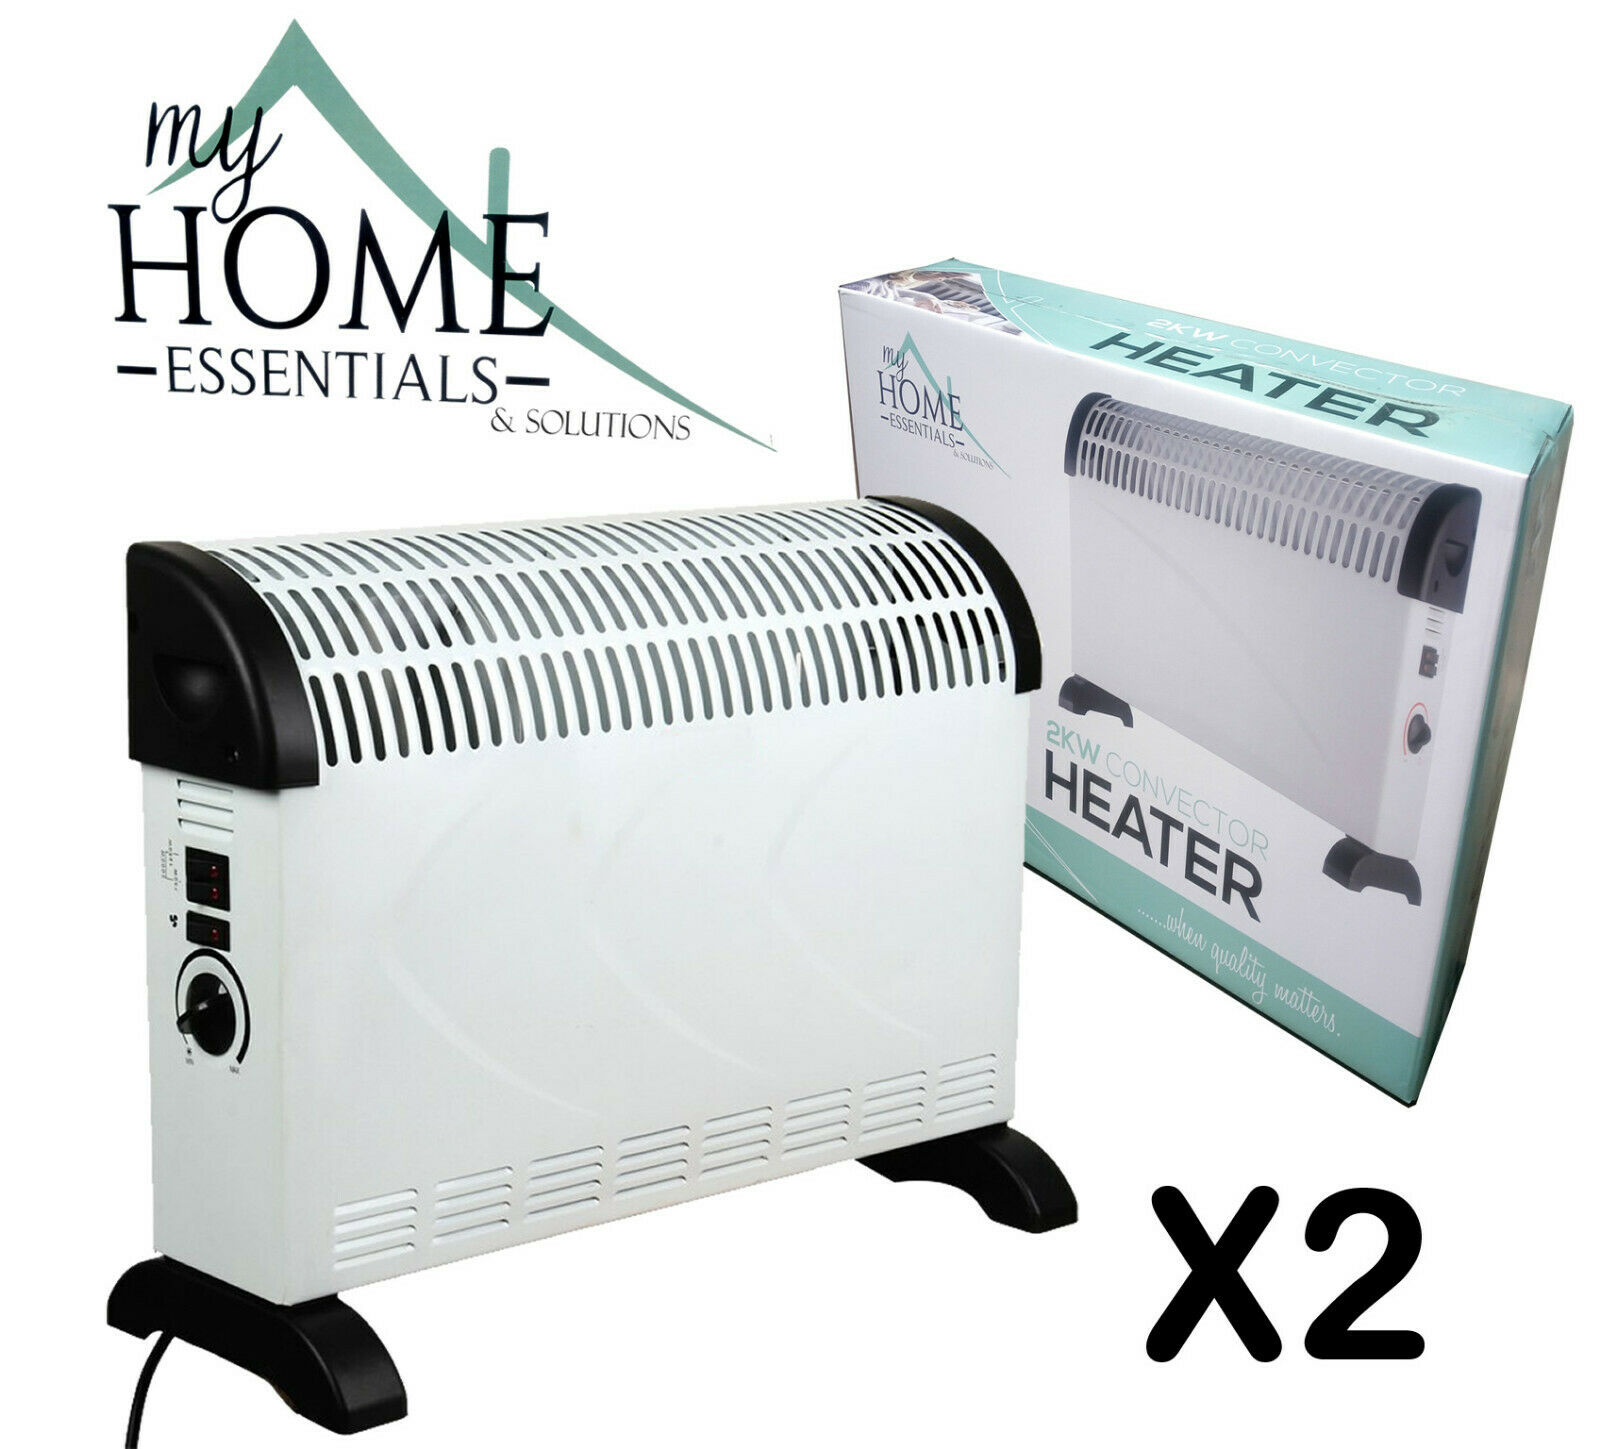 2KW Convector Heater Portable Space Electric 2000W Convection Office Radiator x2